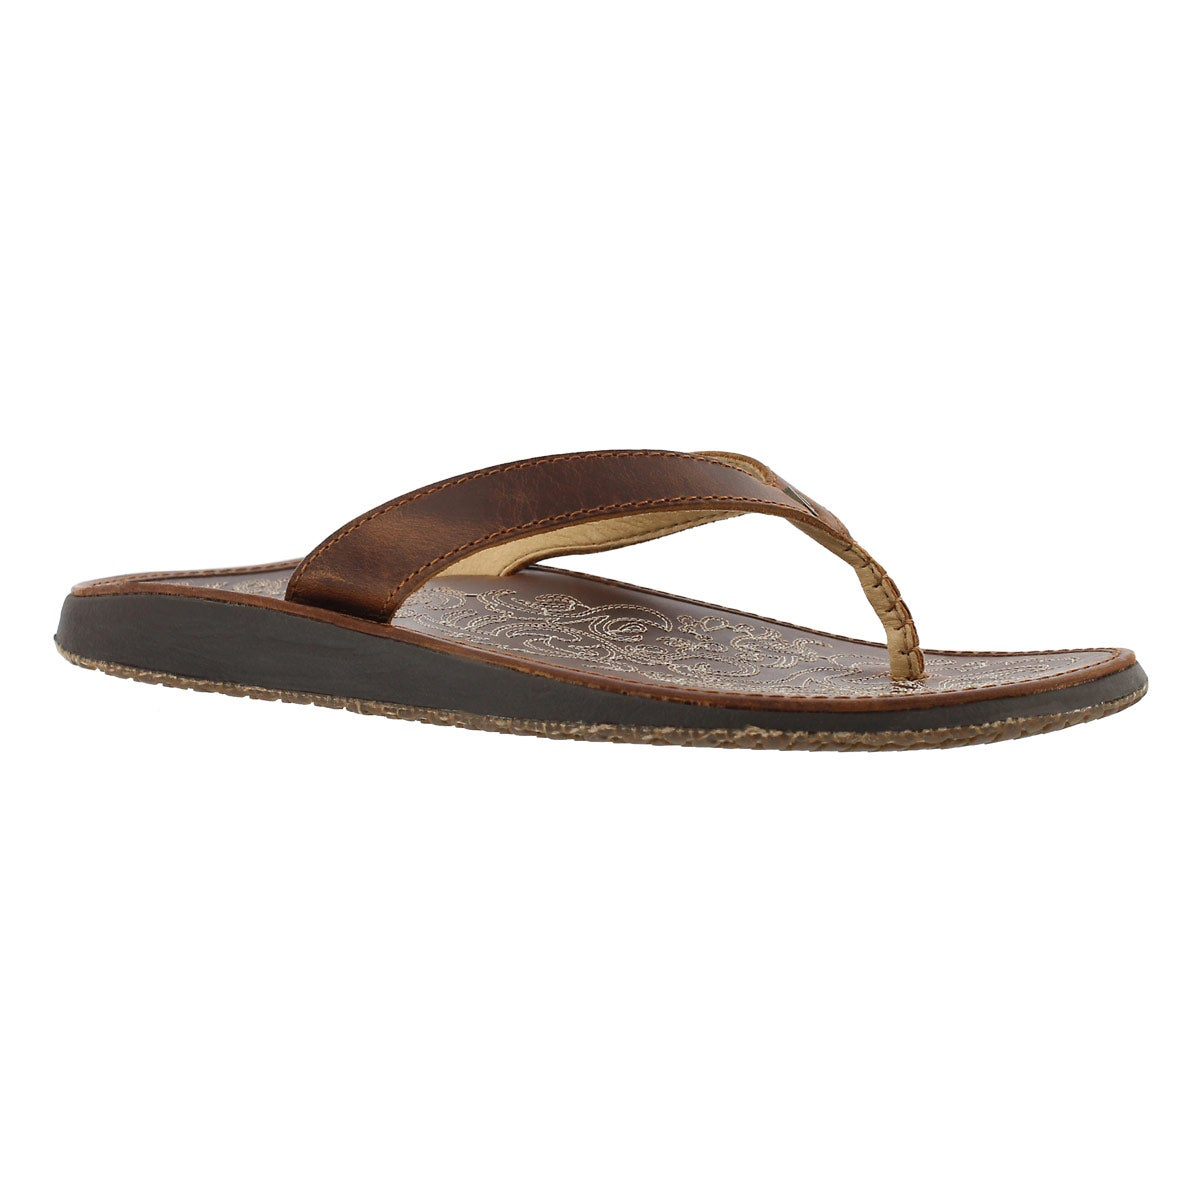 Women's PANIOLO natural thong sandals